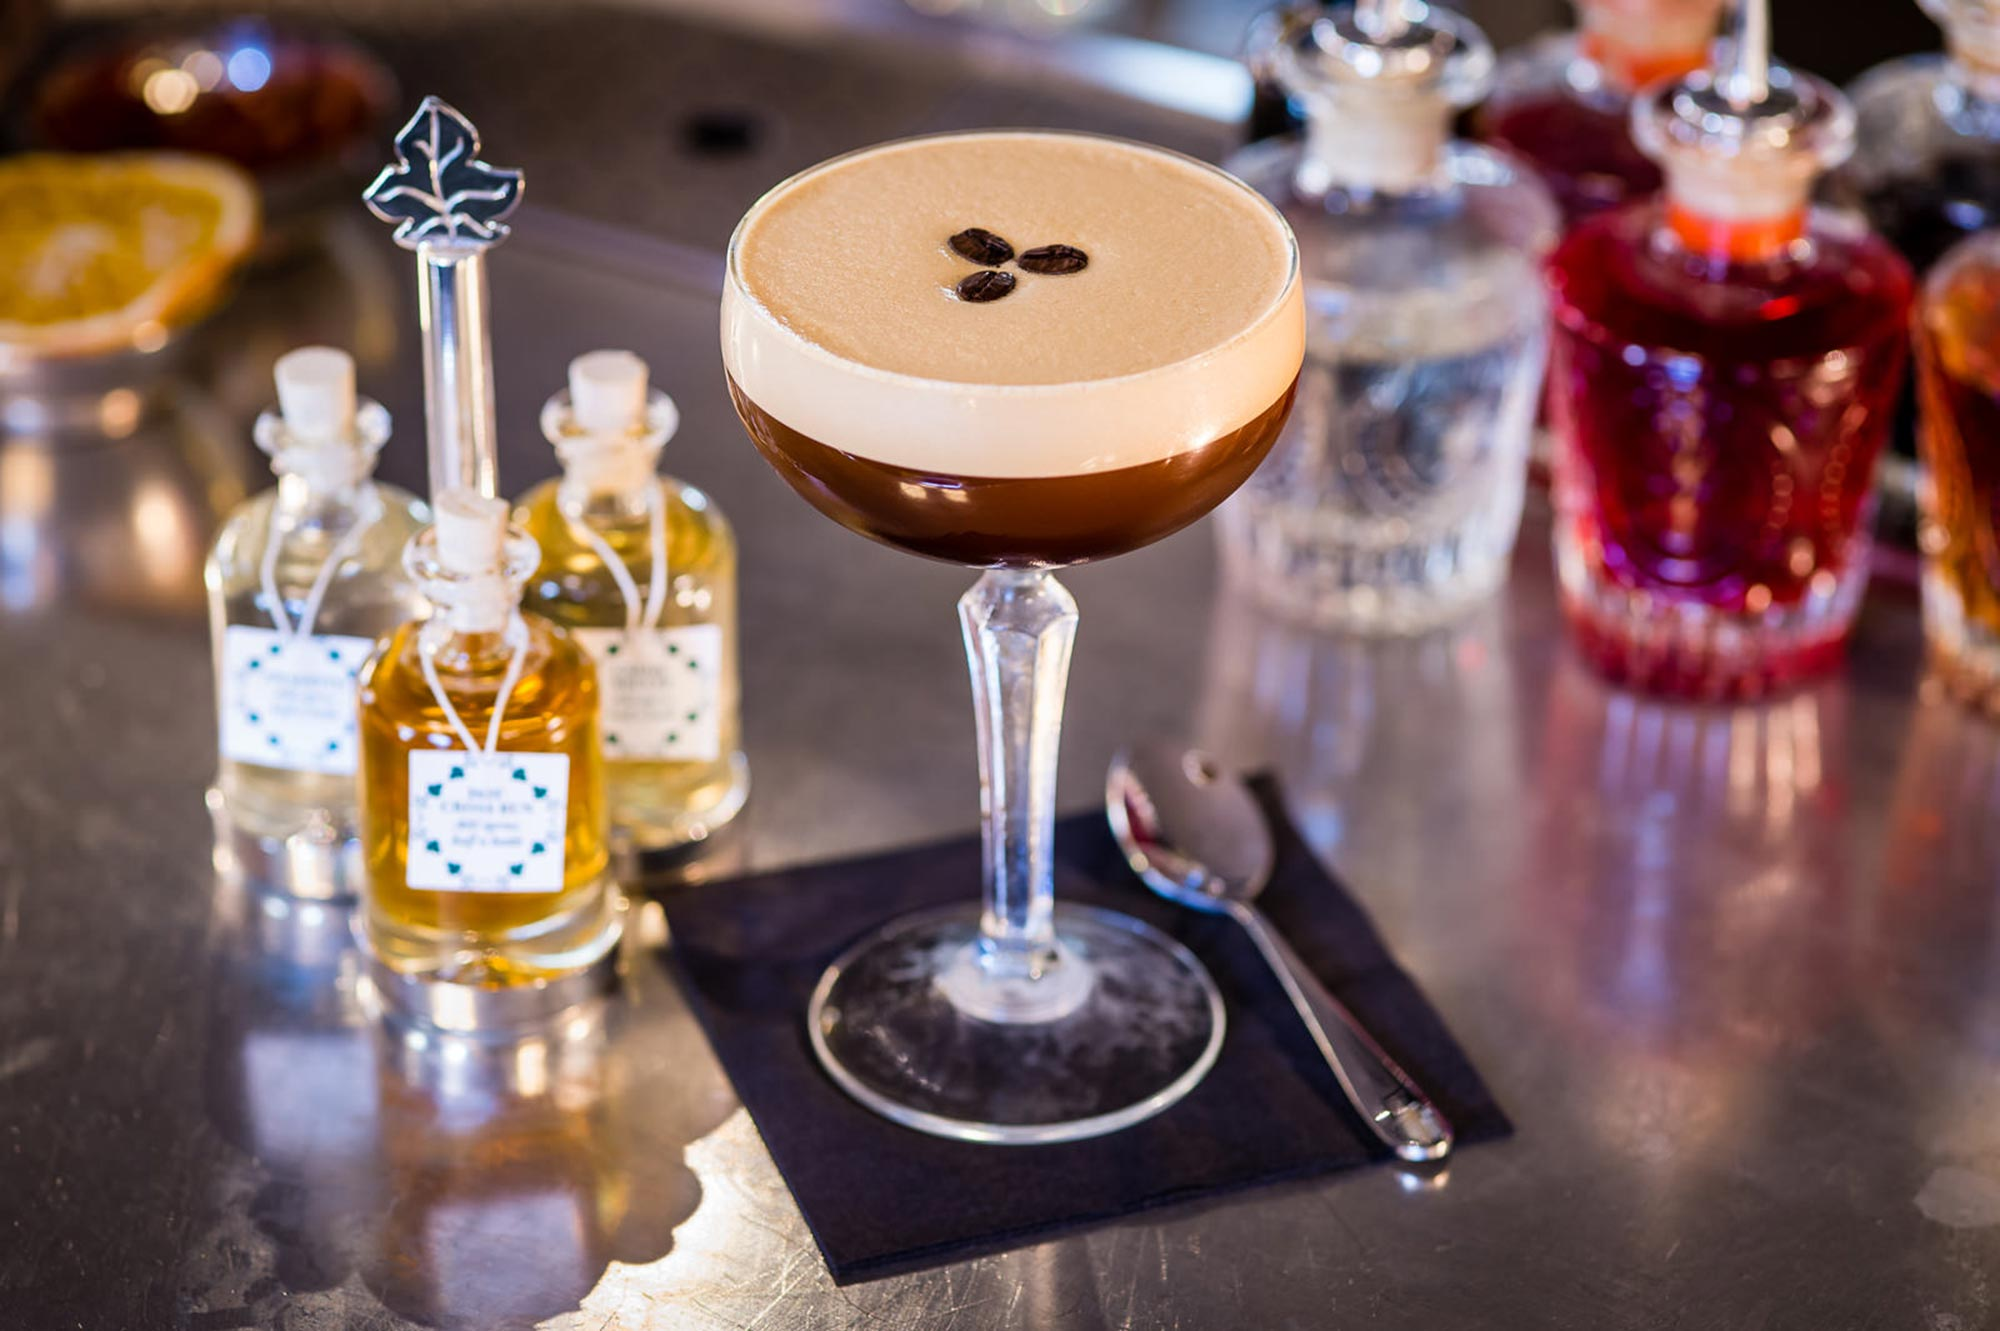 The Ivy Cafe St John's Wood - The Ivy Collection Espresso Martini and Infusions - The Ivy St John's Wood